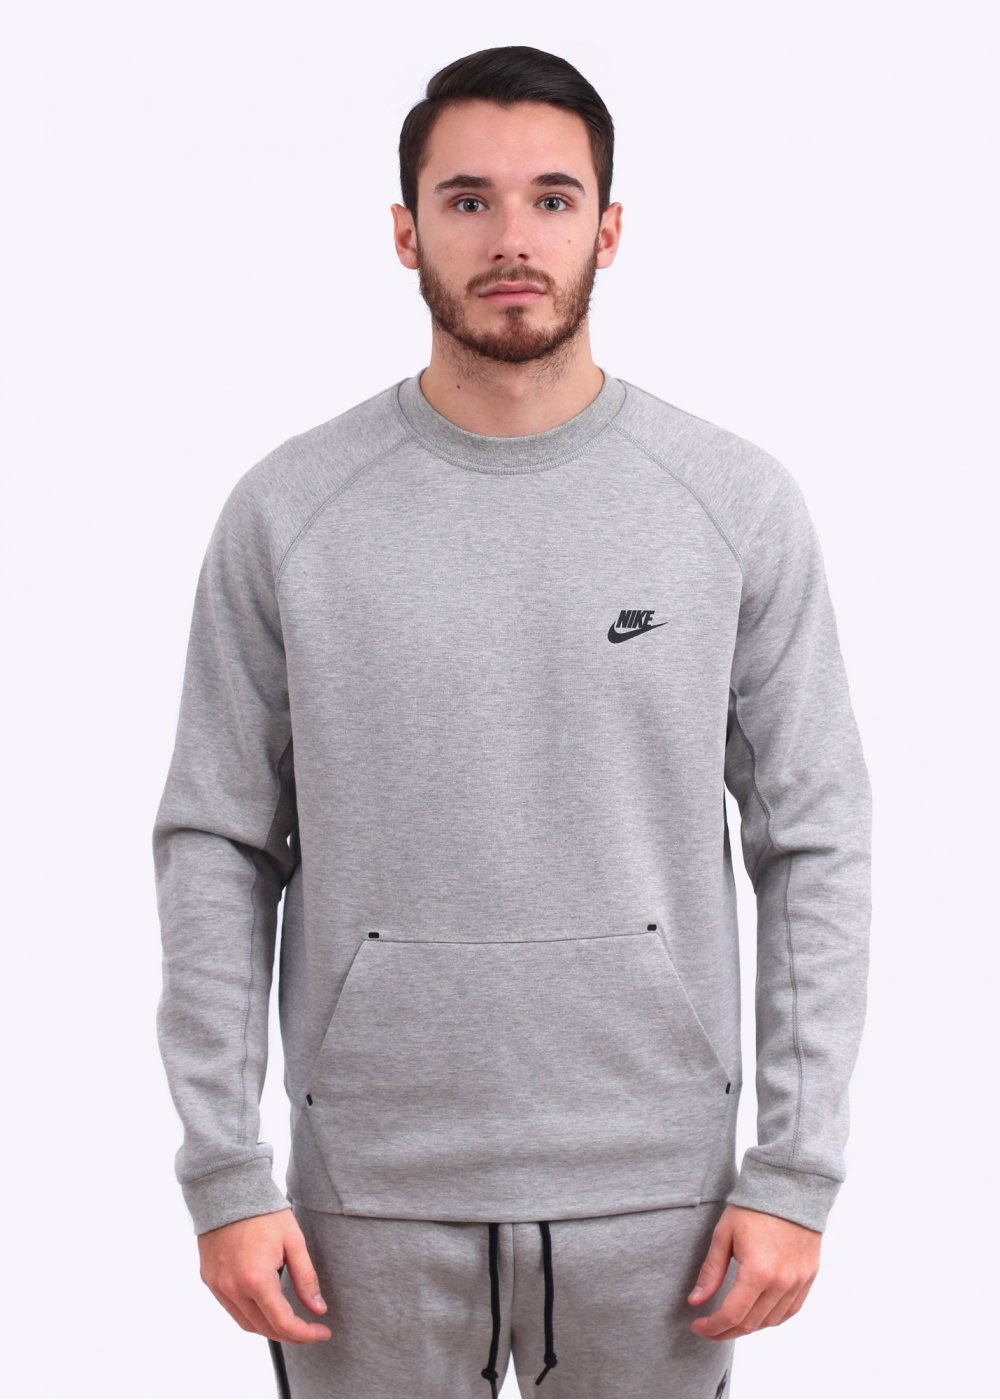 Nike Apparel Tech Fleece Crew Sweatshirt Grey